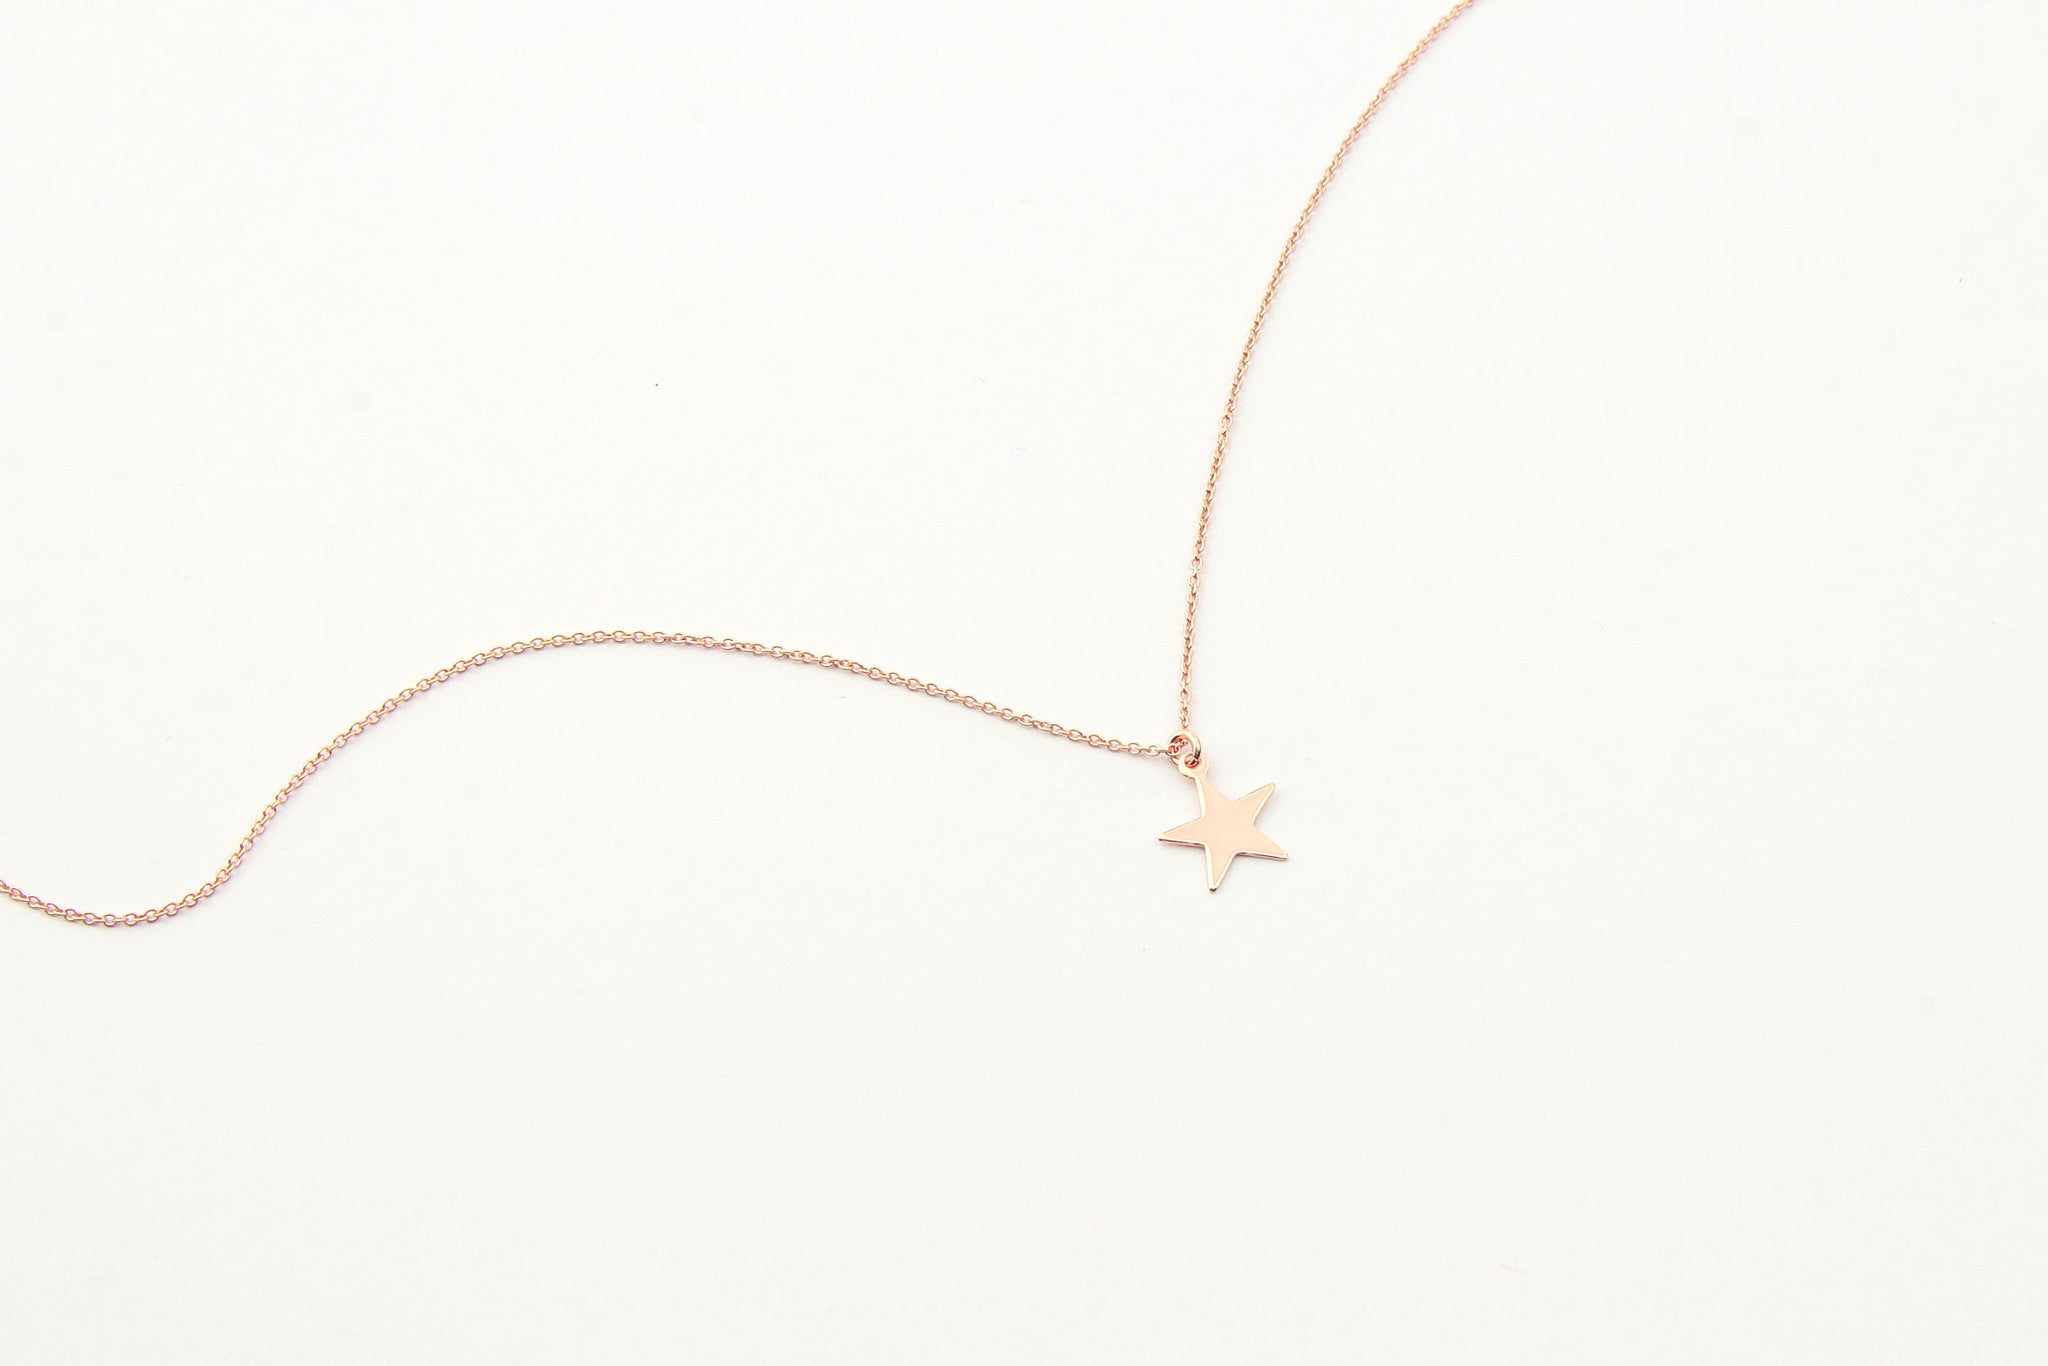 jewelberry necklace kette plain star anchor chain rose gold plated sterling silver fine jewelry handmade with love fairtrade